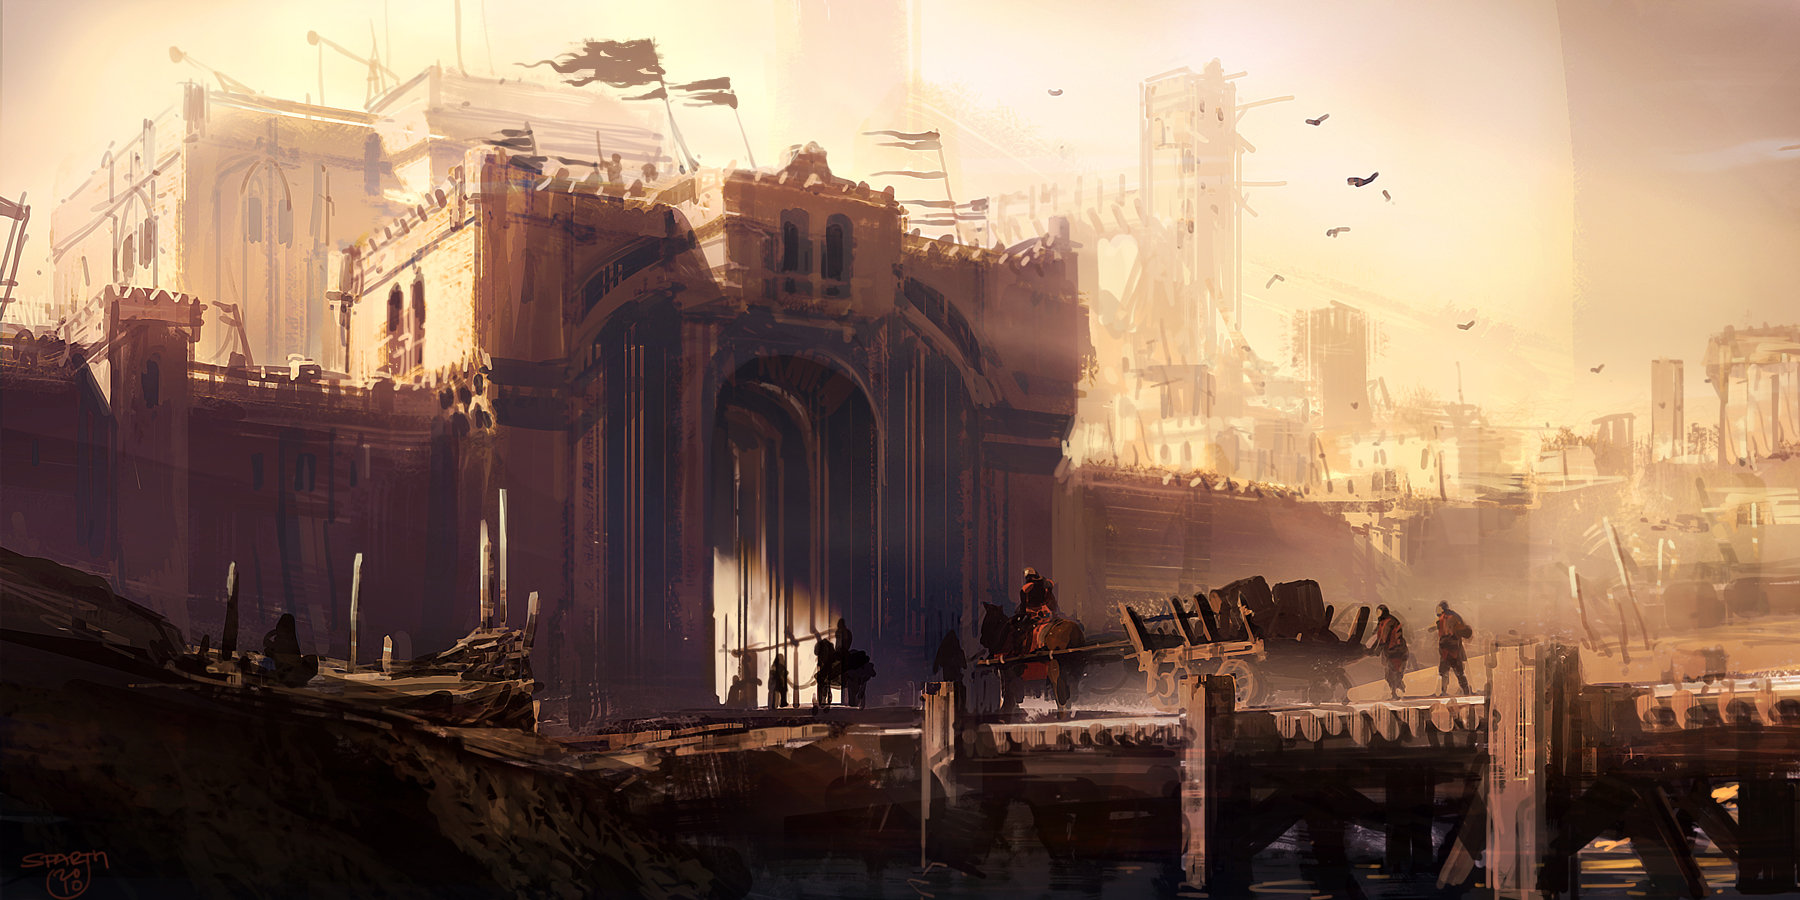 Sparth   medieval interlude ii   2010